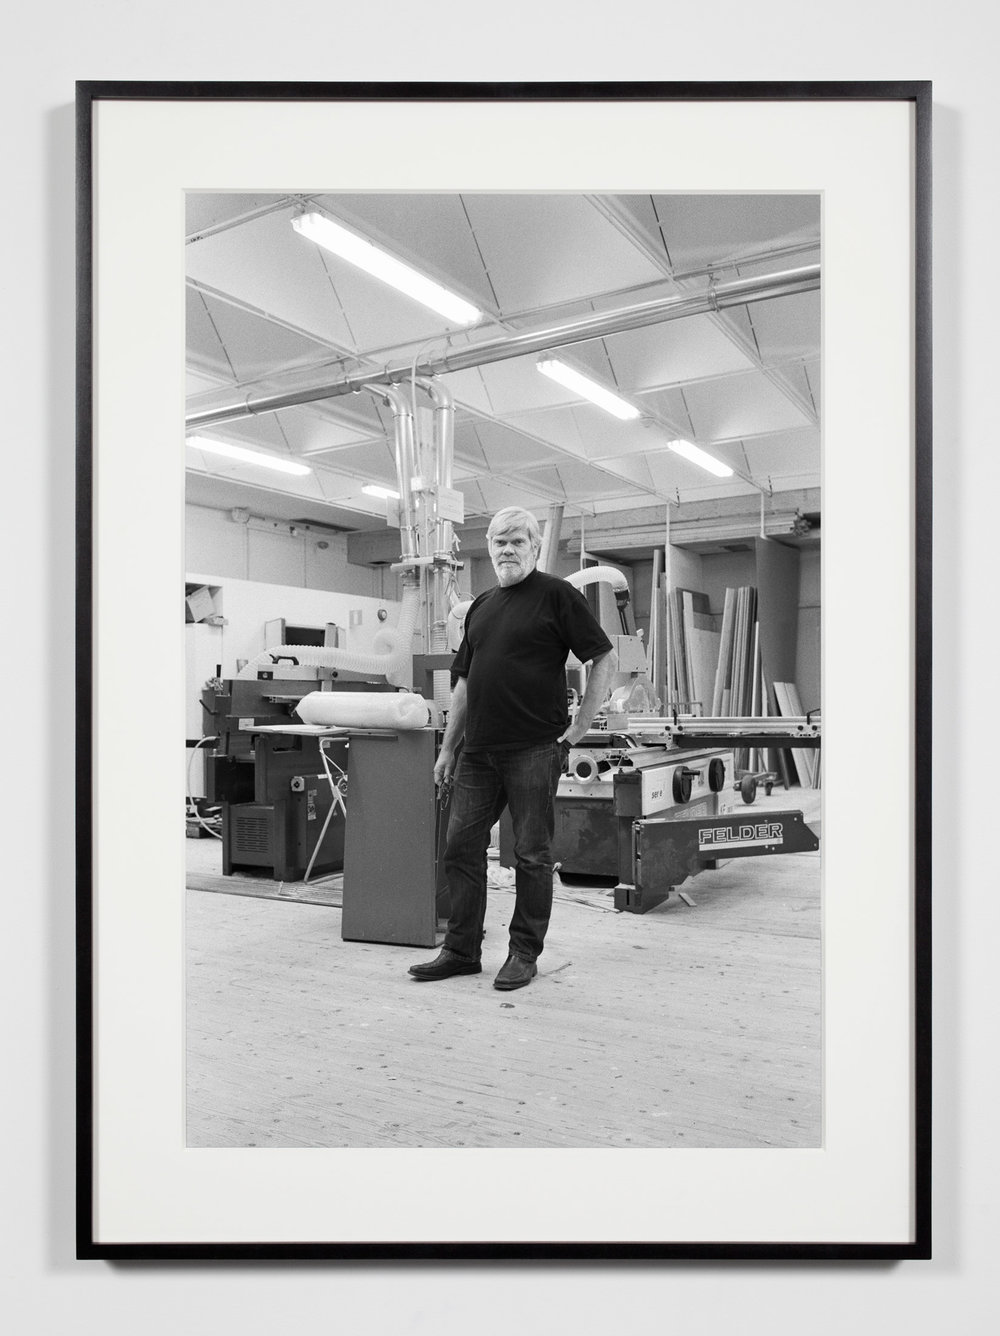 Kunsthalle Chief Technician, Malmö, Sweden, October 16, 2010   2011  Epson Ultrachrome K3 archival ink jet print on Hahnemühle Photo Rag paper  36 3/8 x 26 3/8 inches   Industrial Portraits, 2008–    A Diagram of Forces, 2011